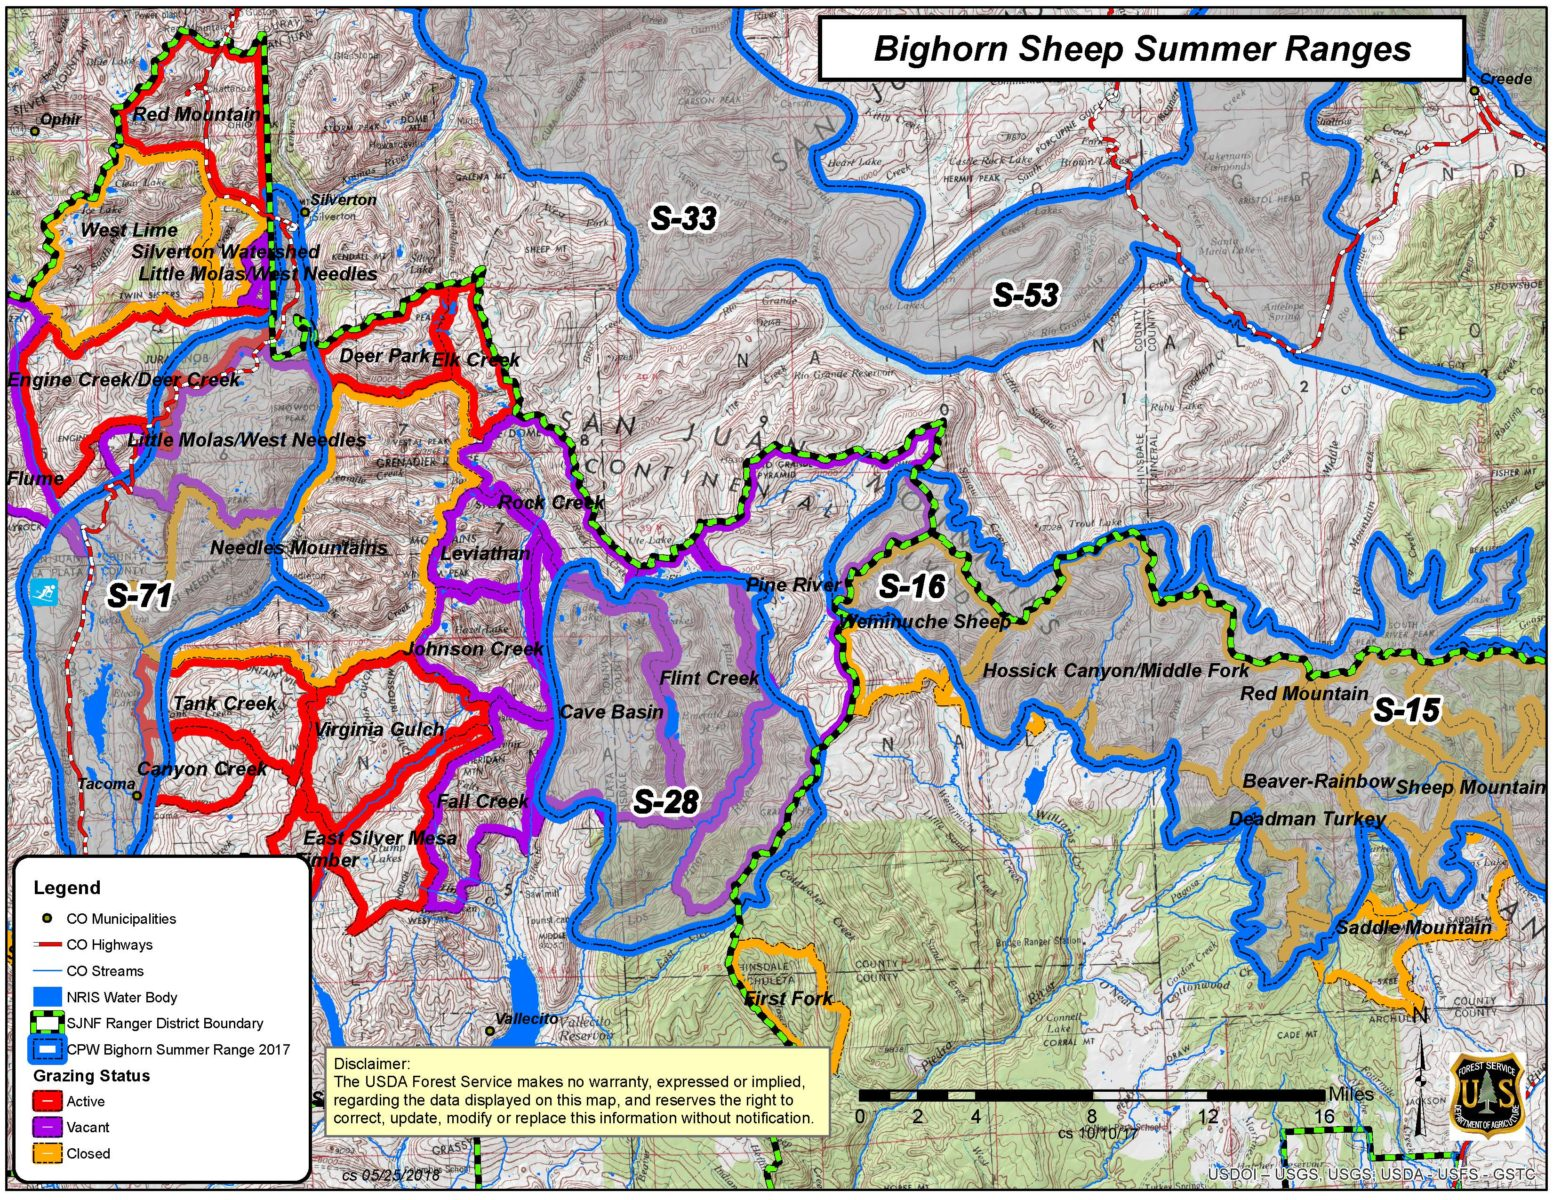 Bighorn sheep summer ranges